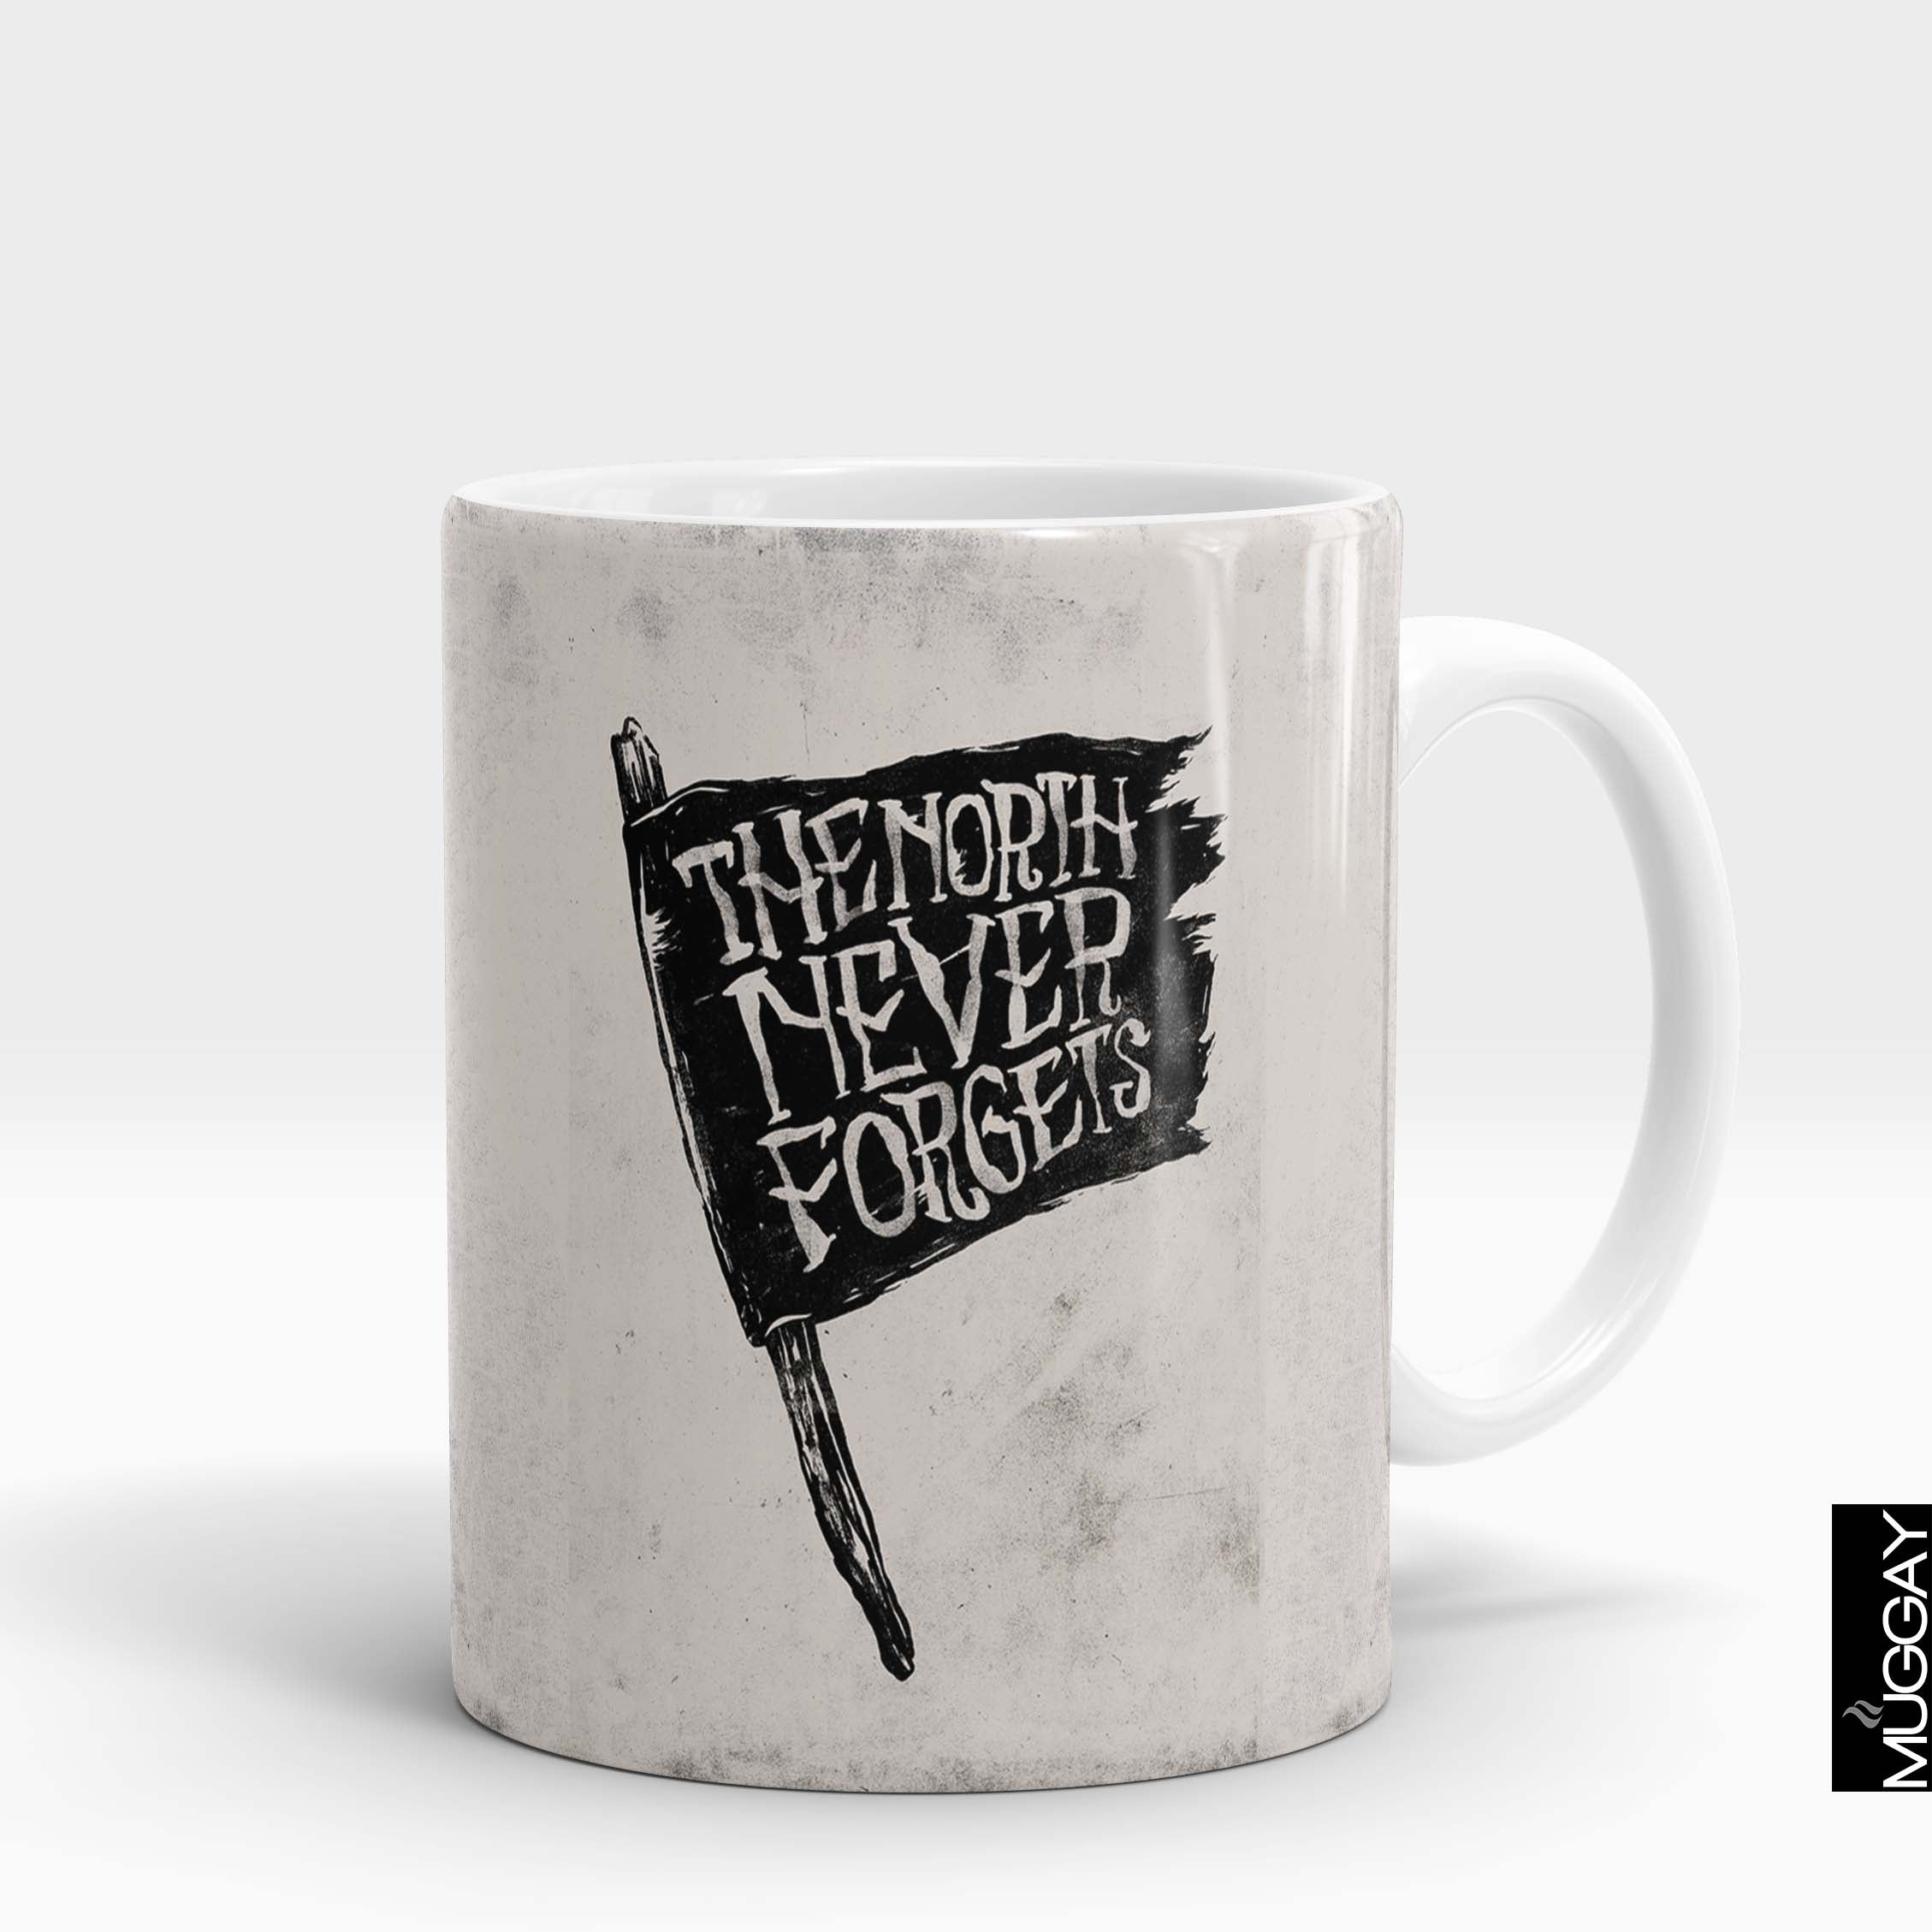 Game of thrones mugs -23